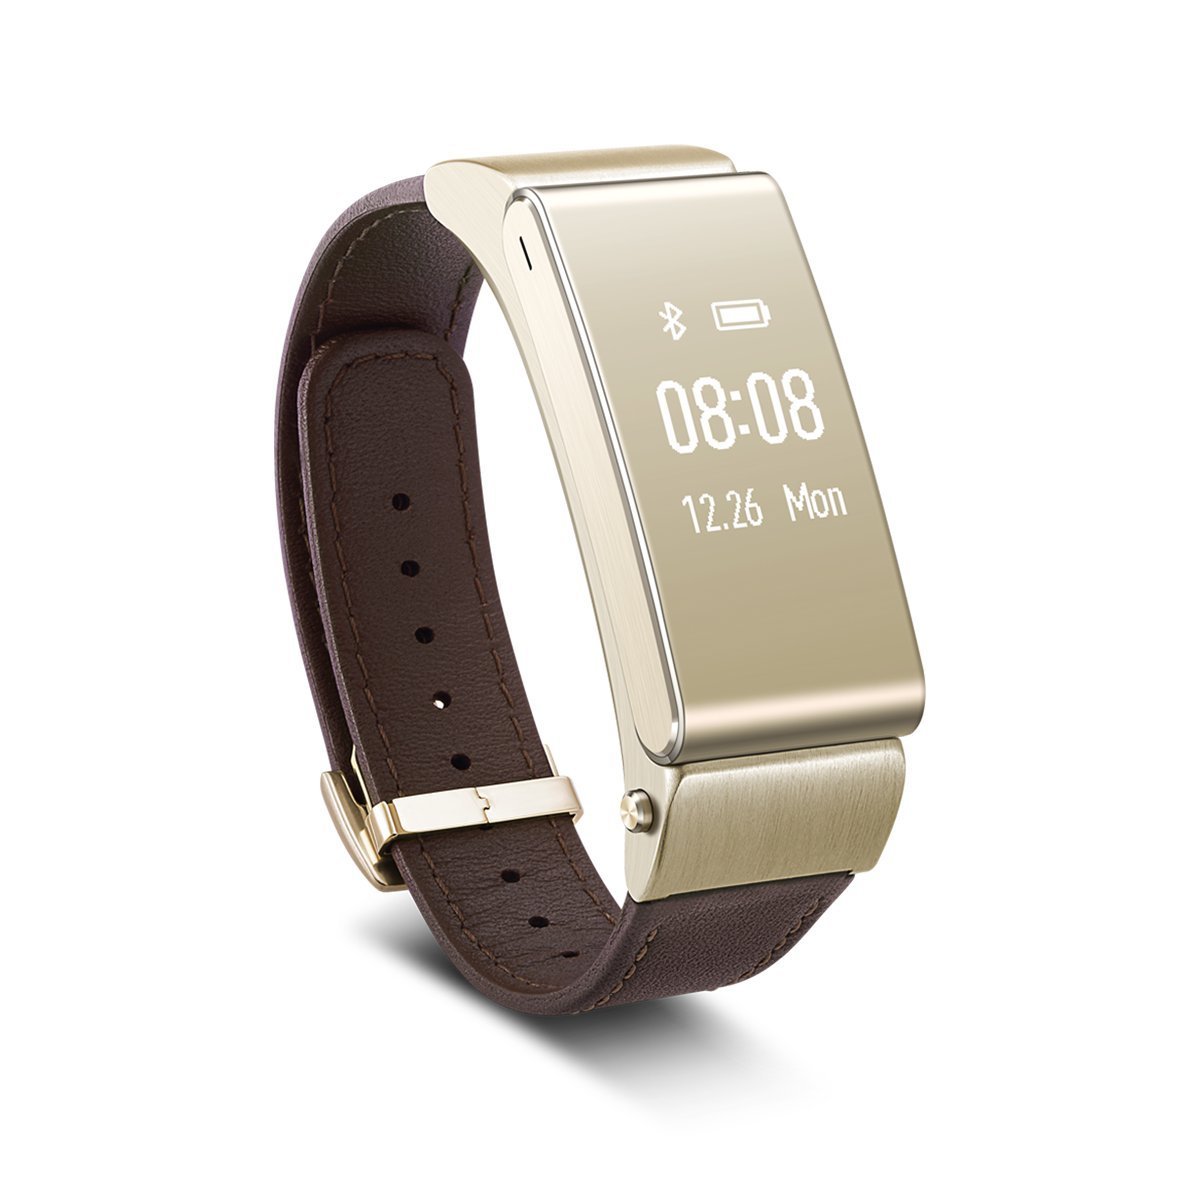 huawei smartwatch b2. amazon.com: huawei talkband b2 wireless activity tracking wristband + bluetooth earpiece (works with up) - gold/leather (u.s. warranty): cell phones \u0026 smartwatch amazon.com